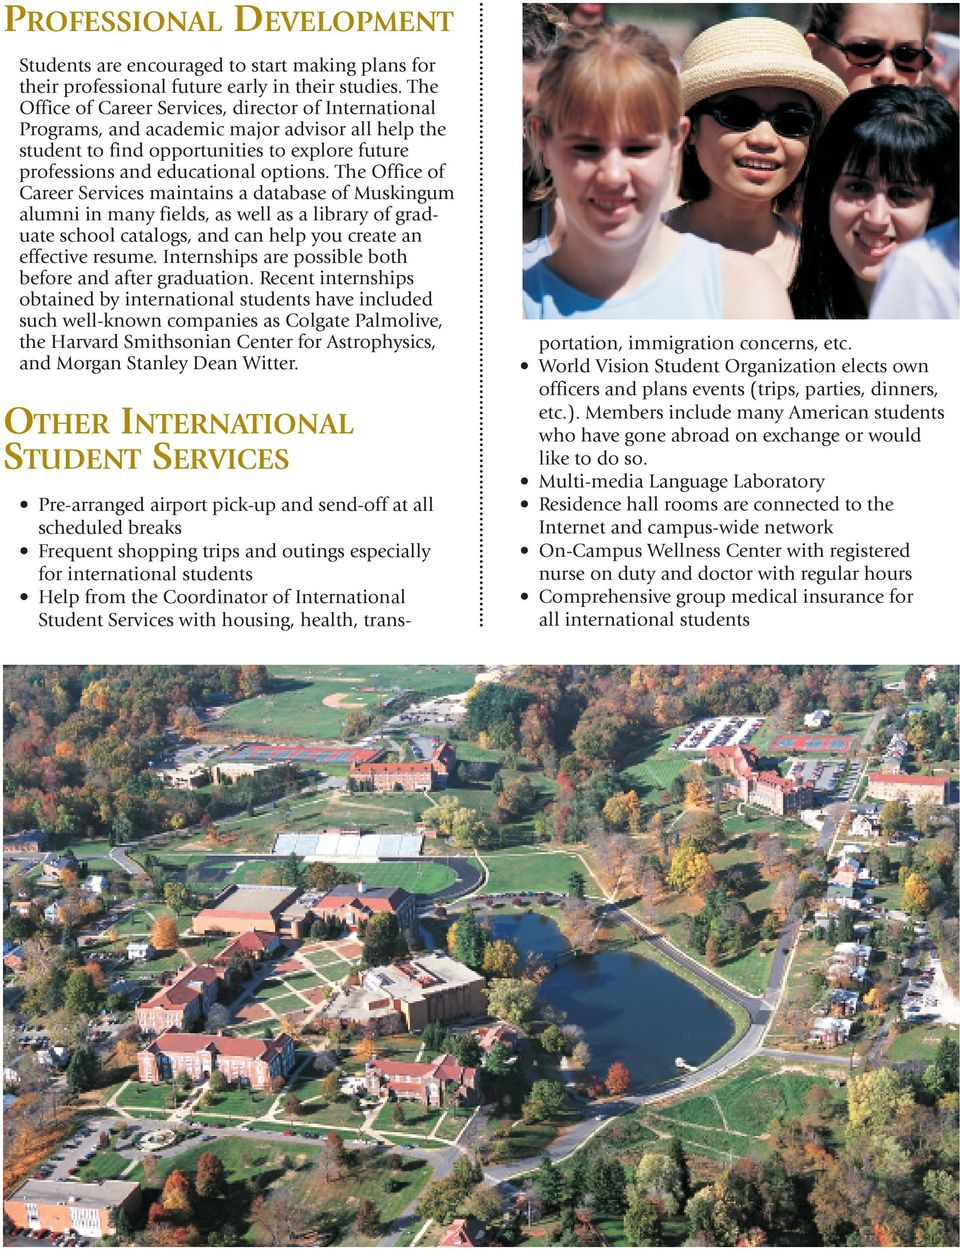 The Office of Career Services maintains a database of Muskingum alumni in many fields, as well as a library of graduate school catalogs, and can help you create an effective resume.